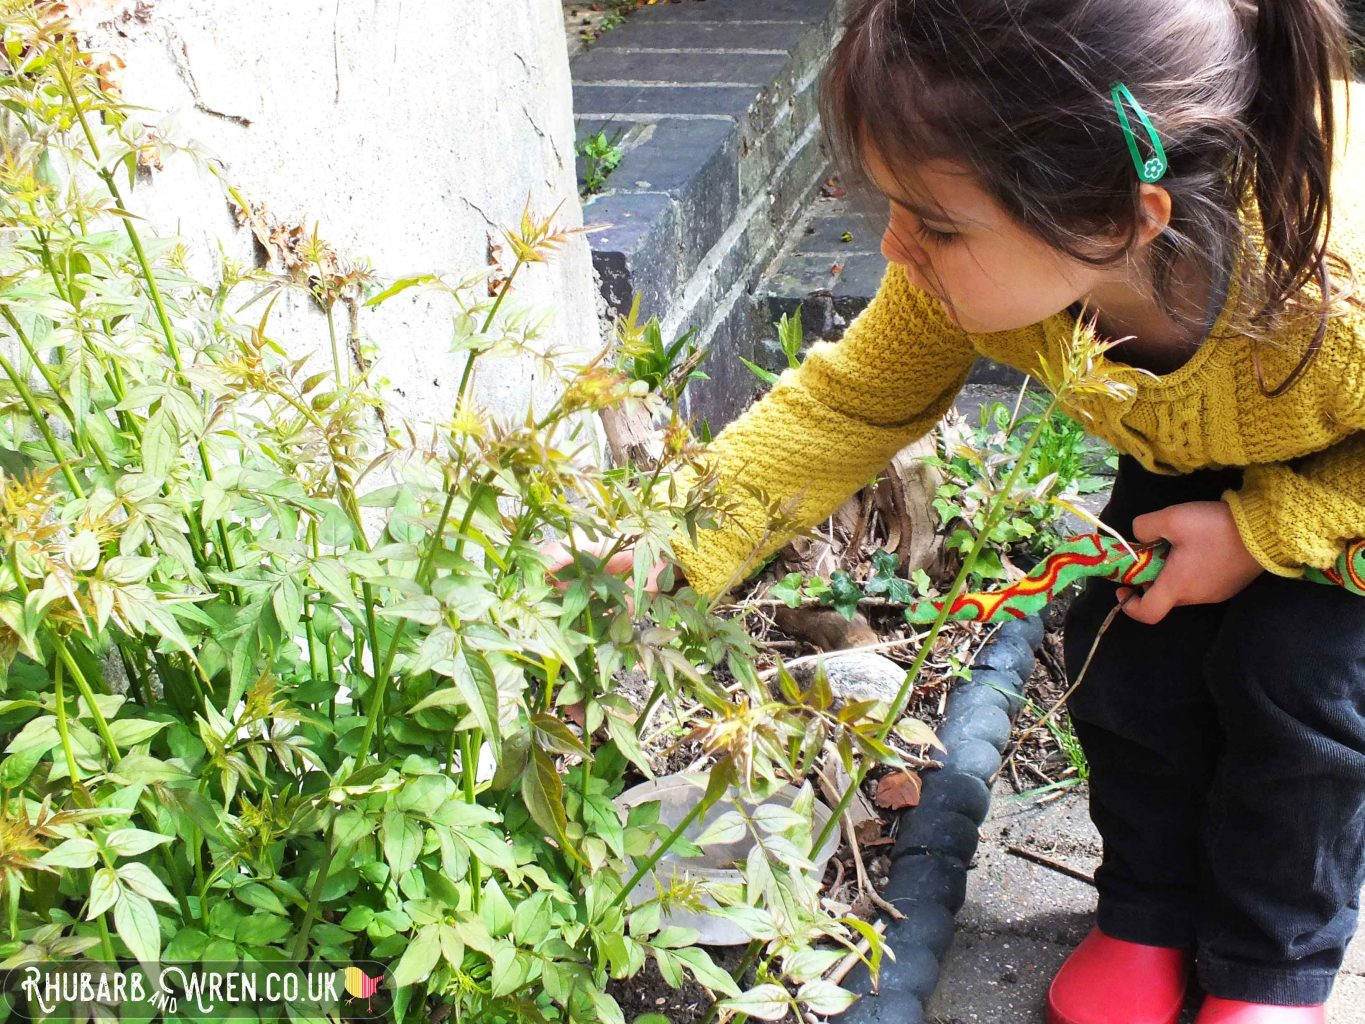 Little girl picking leaves in a garden